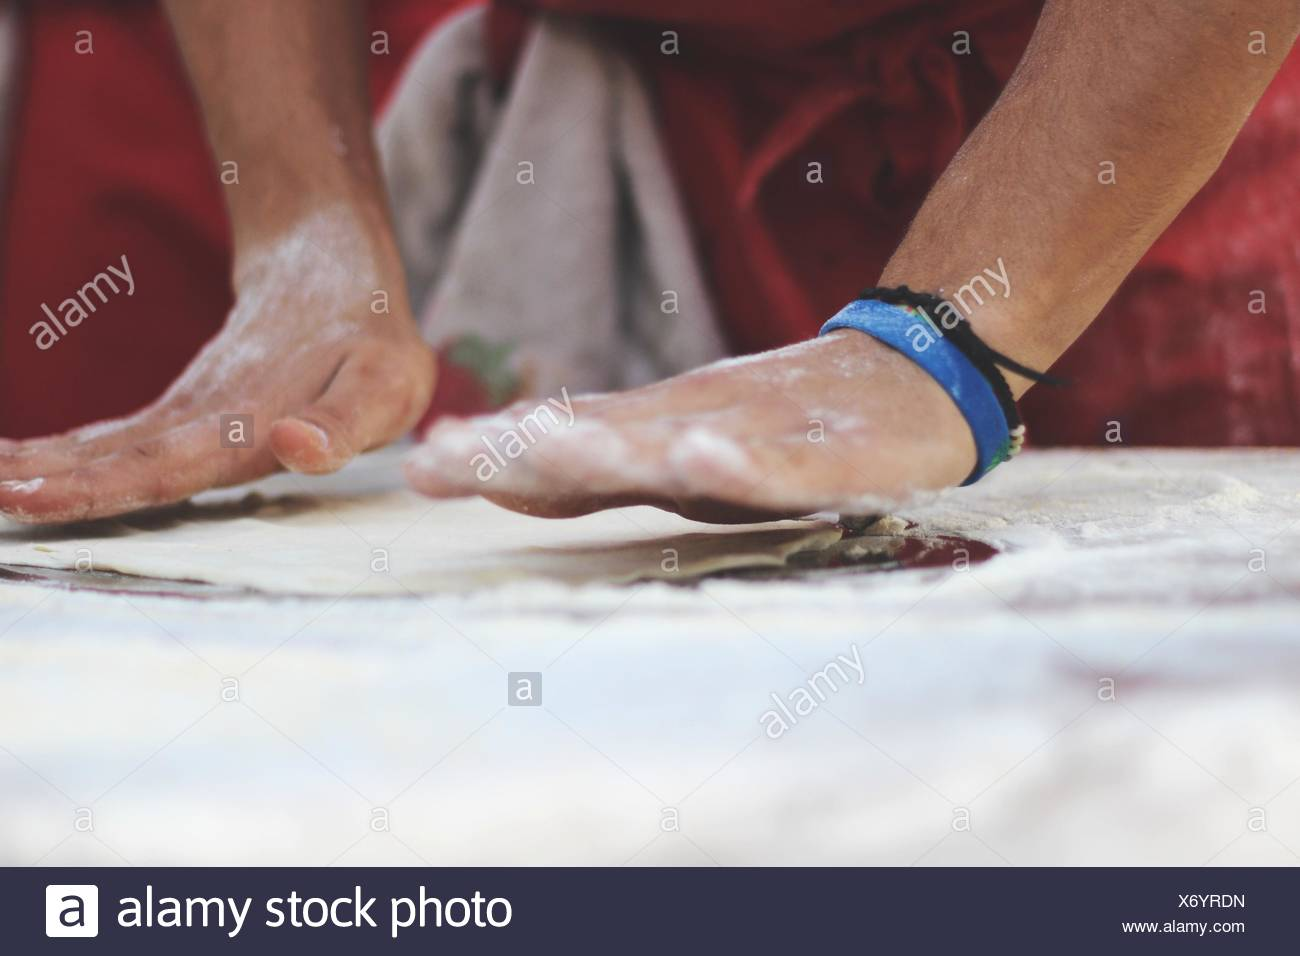 Cropped Image Of Man Kneading Dough At Commercial Kitchen - Stock Image